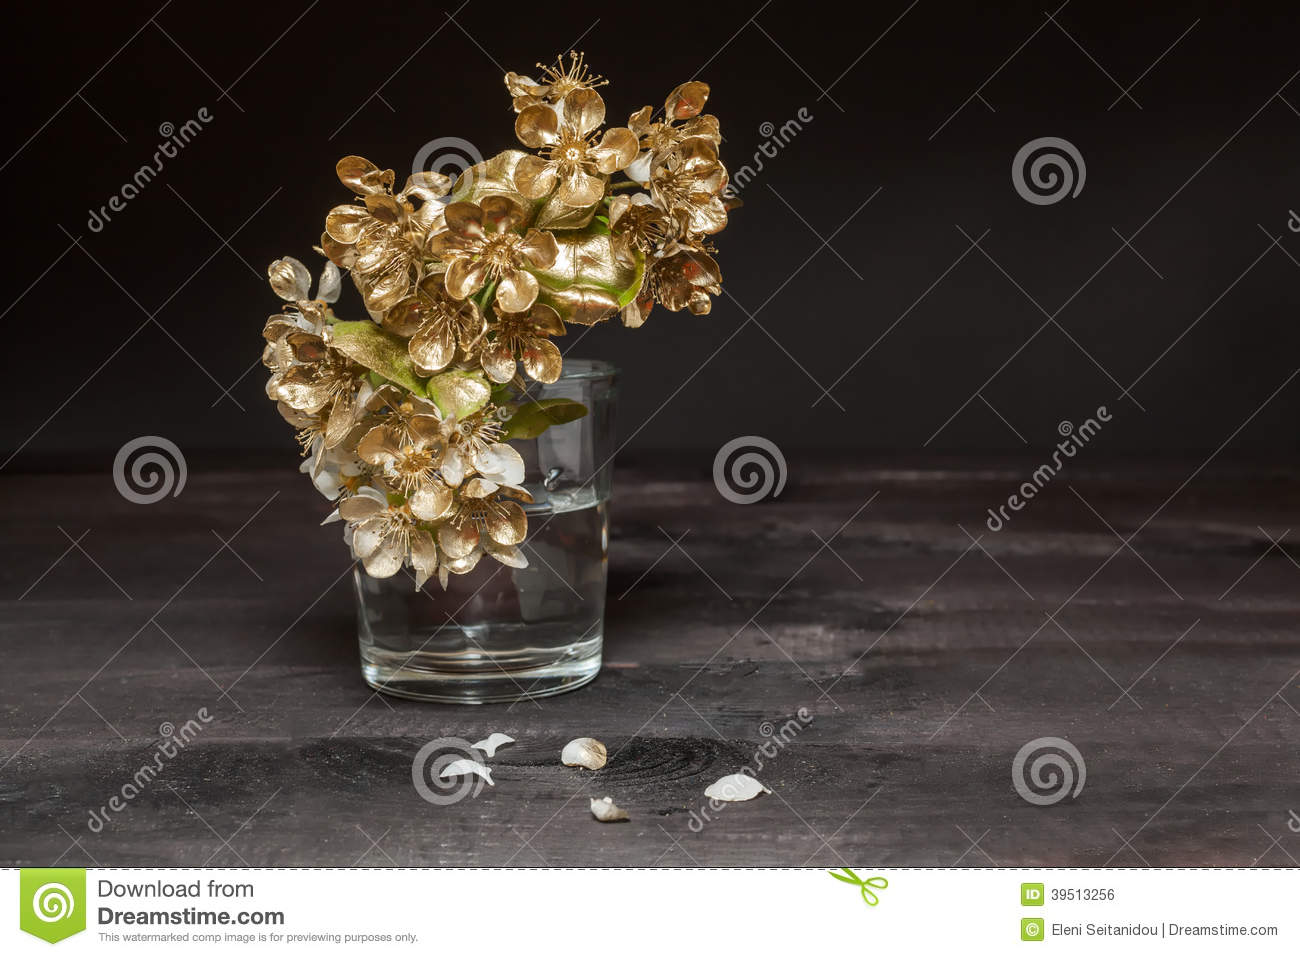 Golden Pear flowers